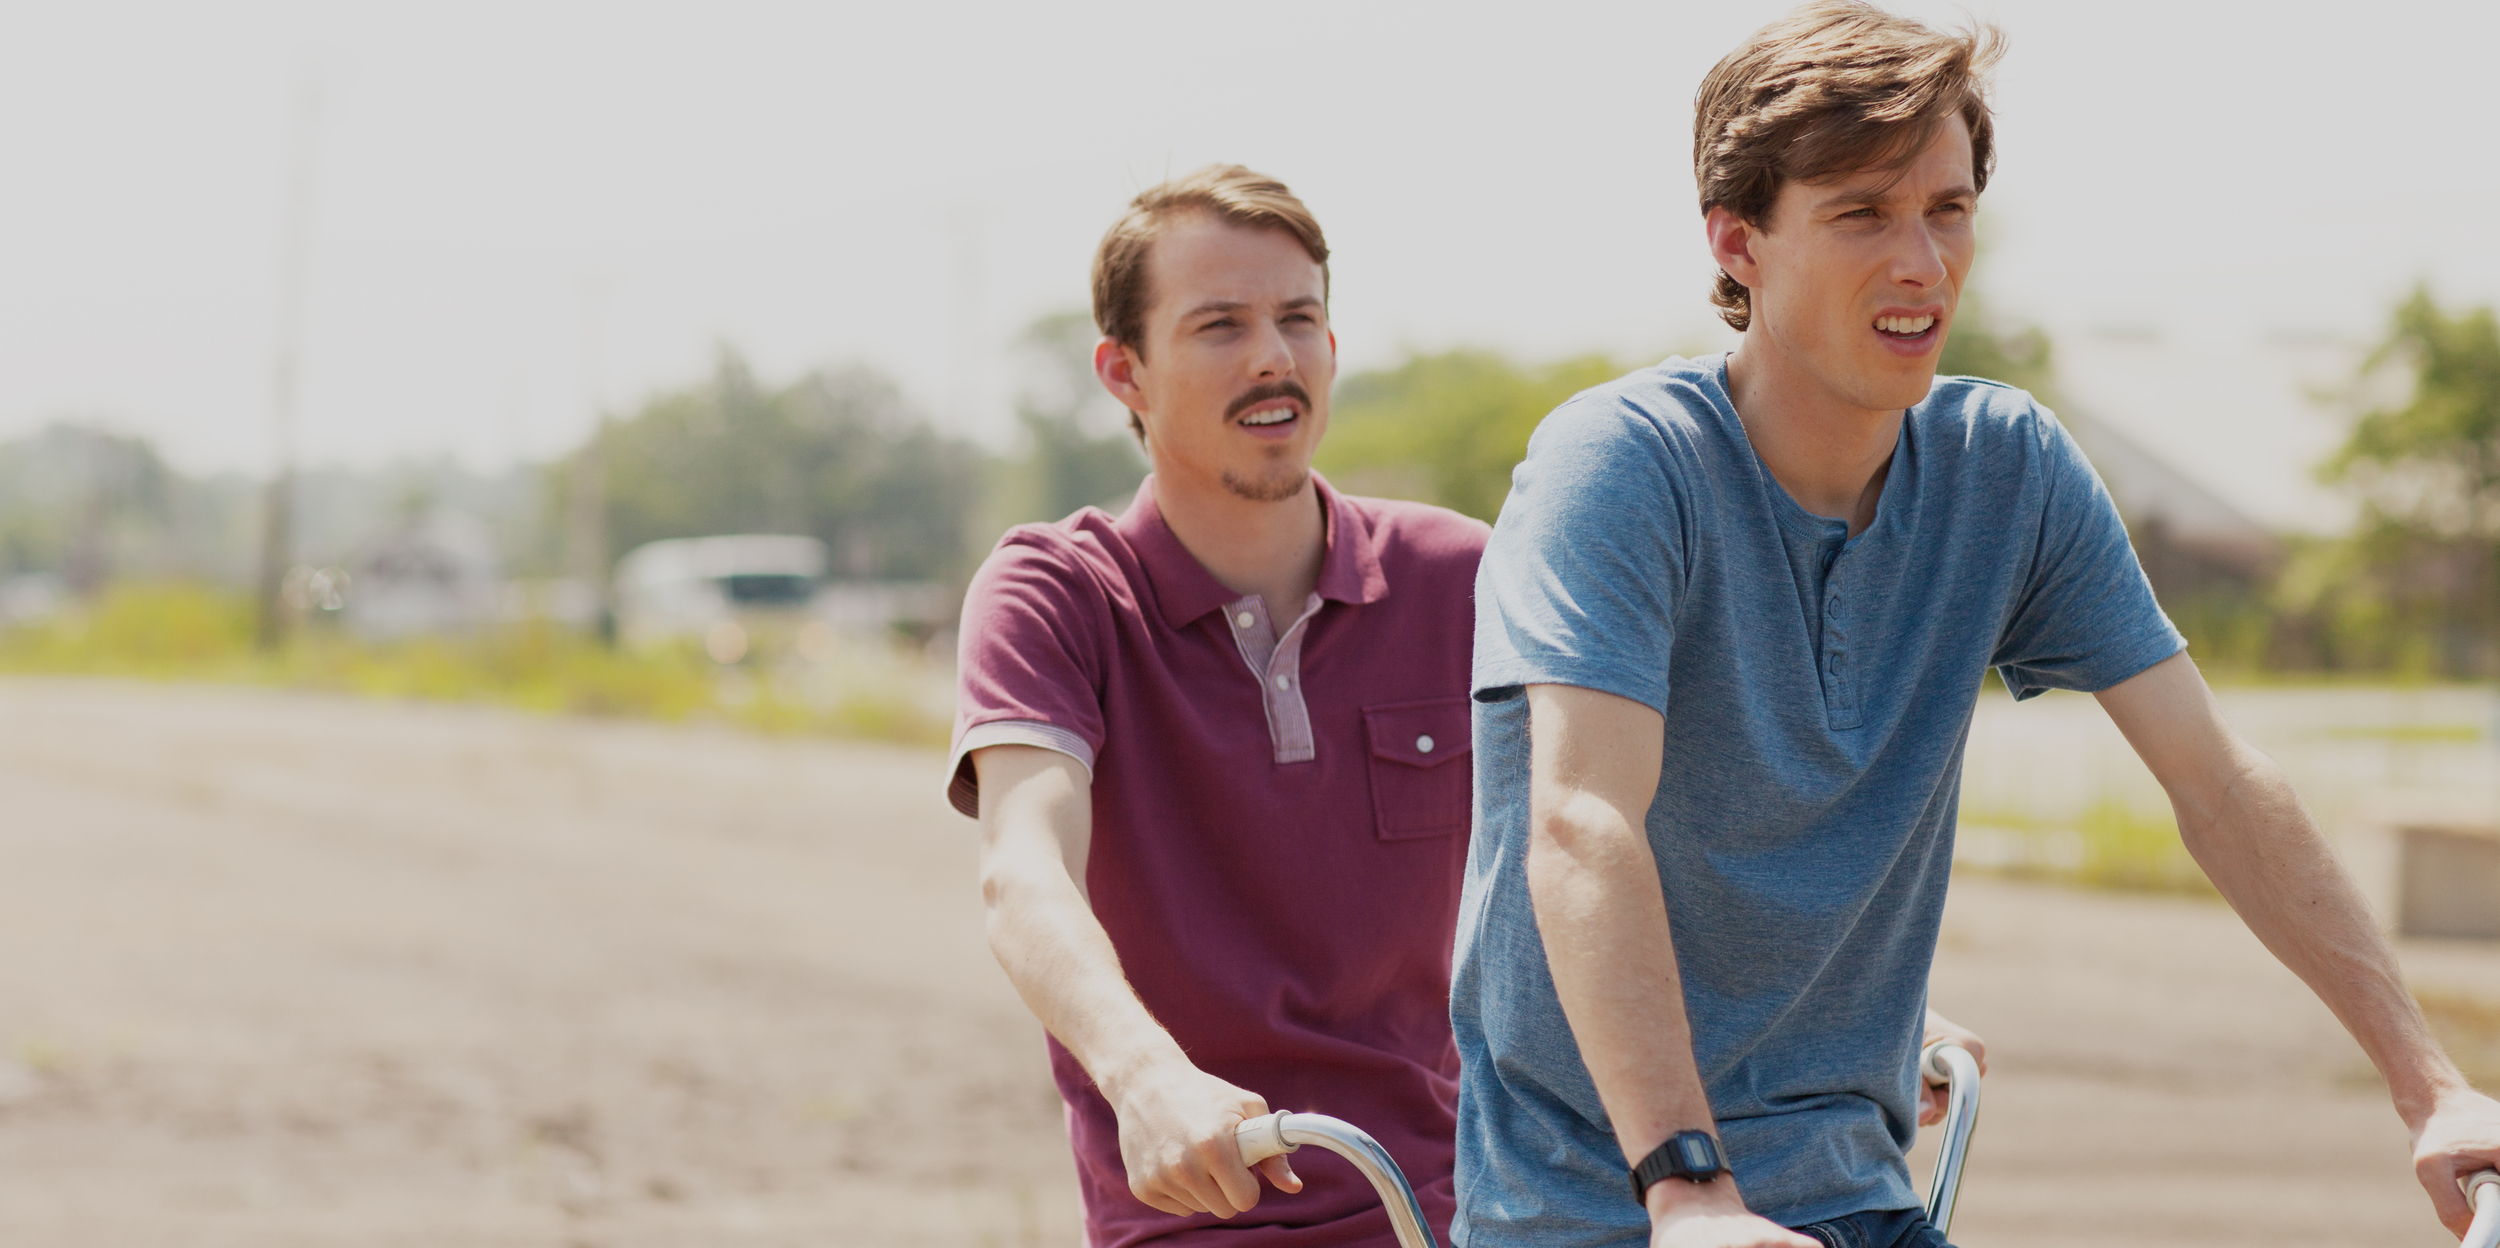 Phil Garrity and Joe Garrity ride the famed tandem bicycle in TWINSBURG (2016).